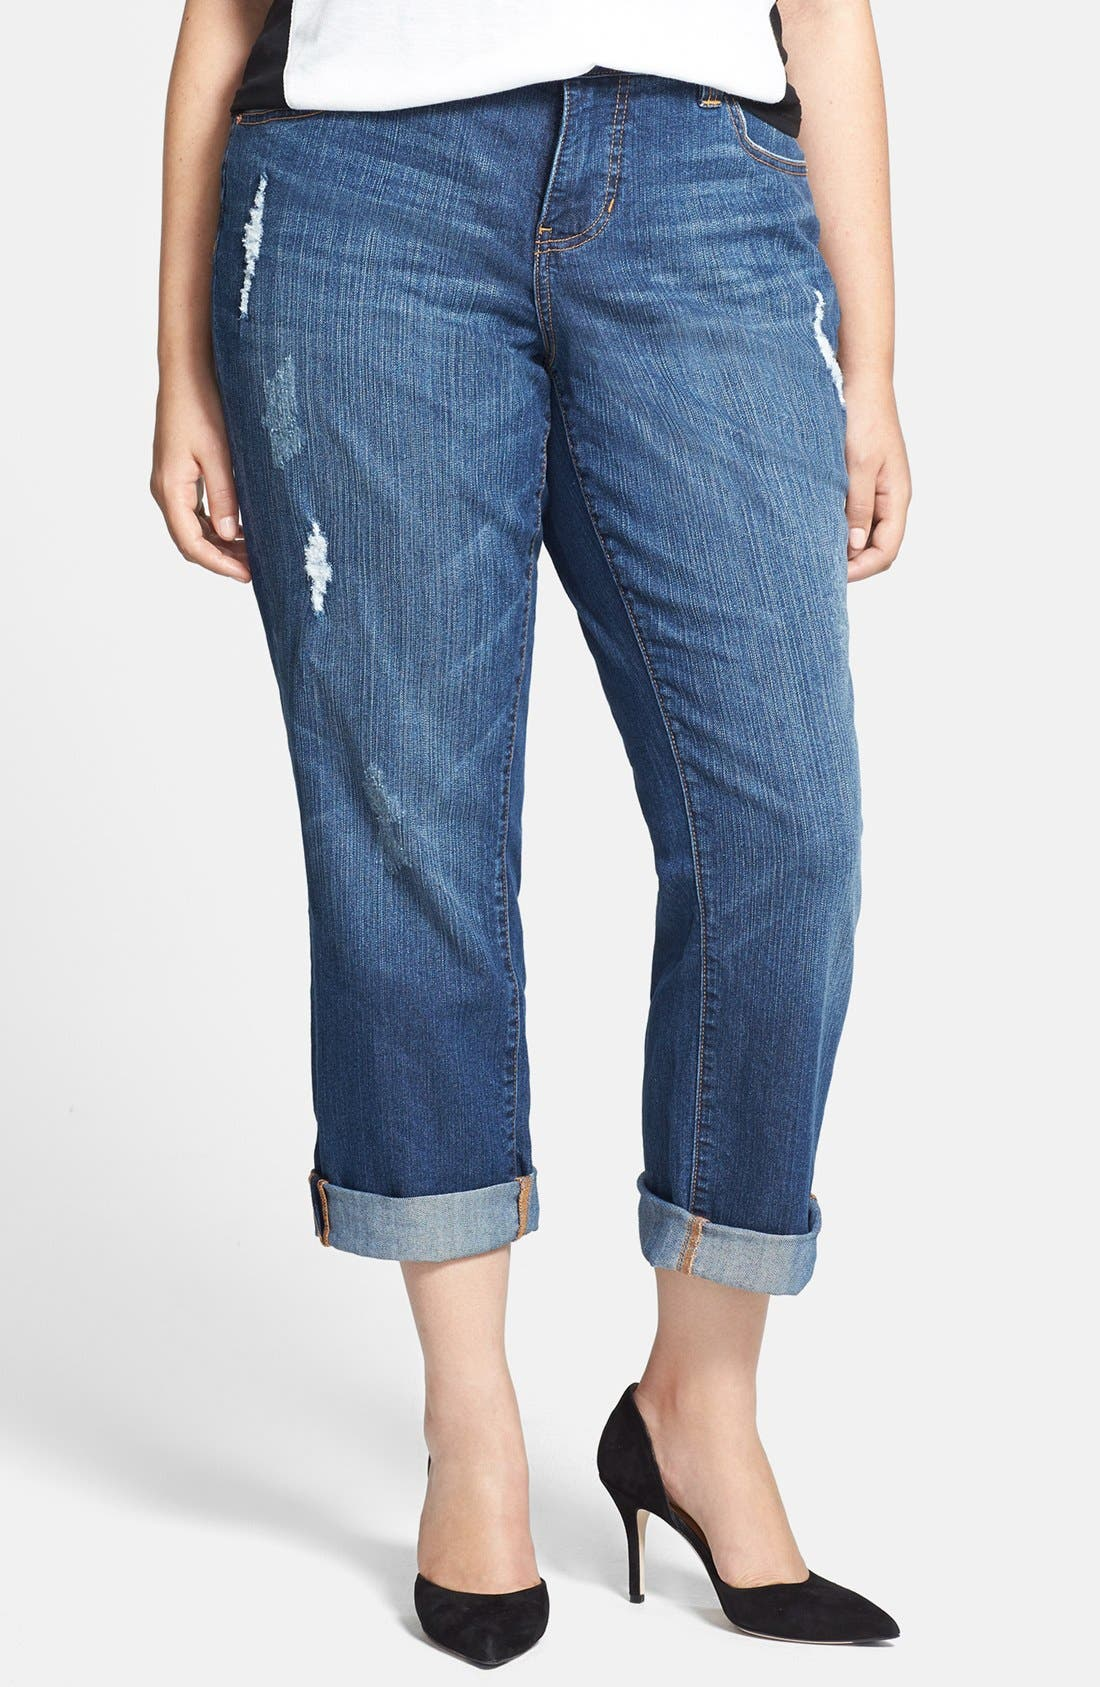 Main Image - Jag Jeans 'Henry' Destroyed Boyfriend Jeans (Reservoir) (Plus Size)